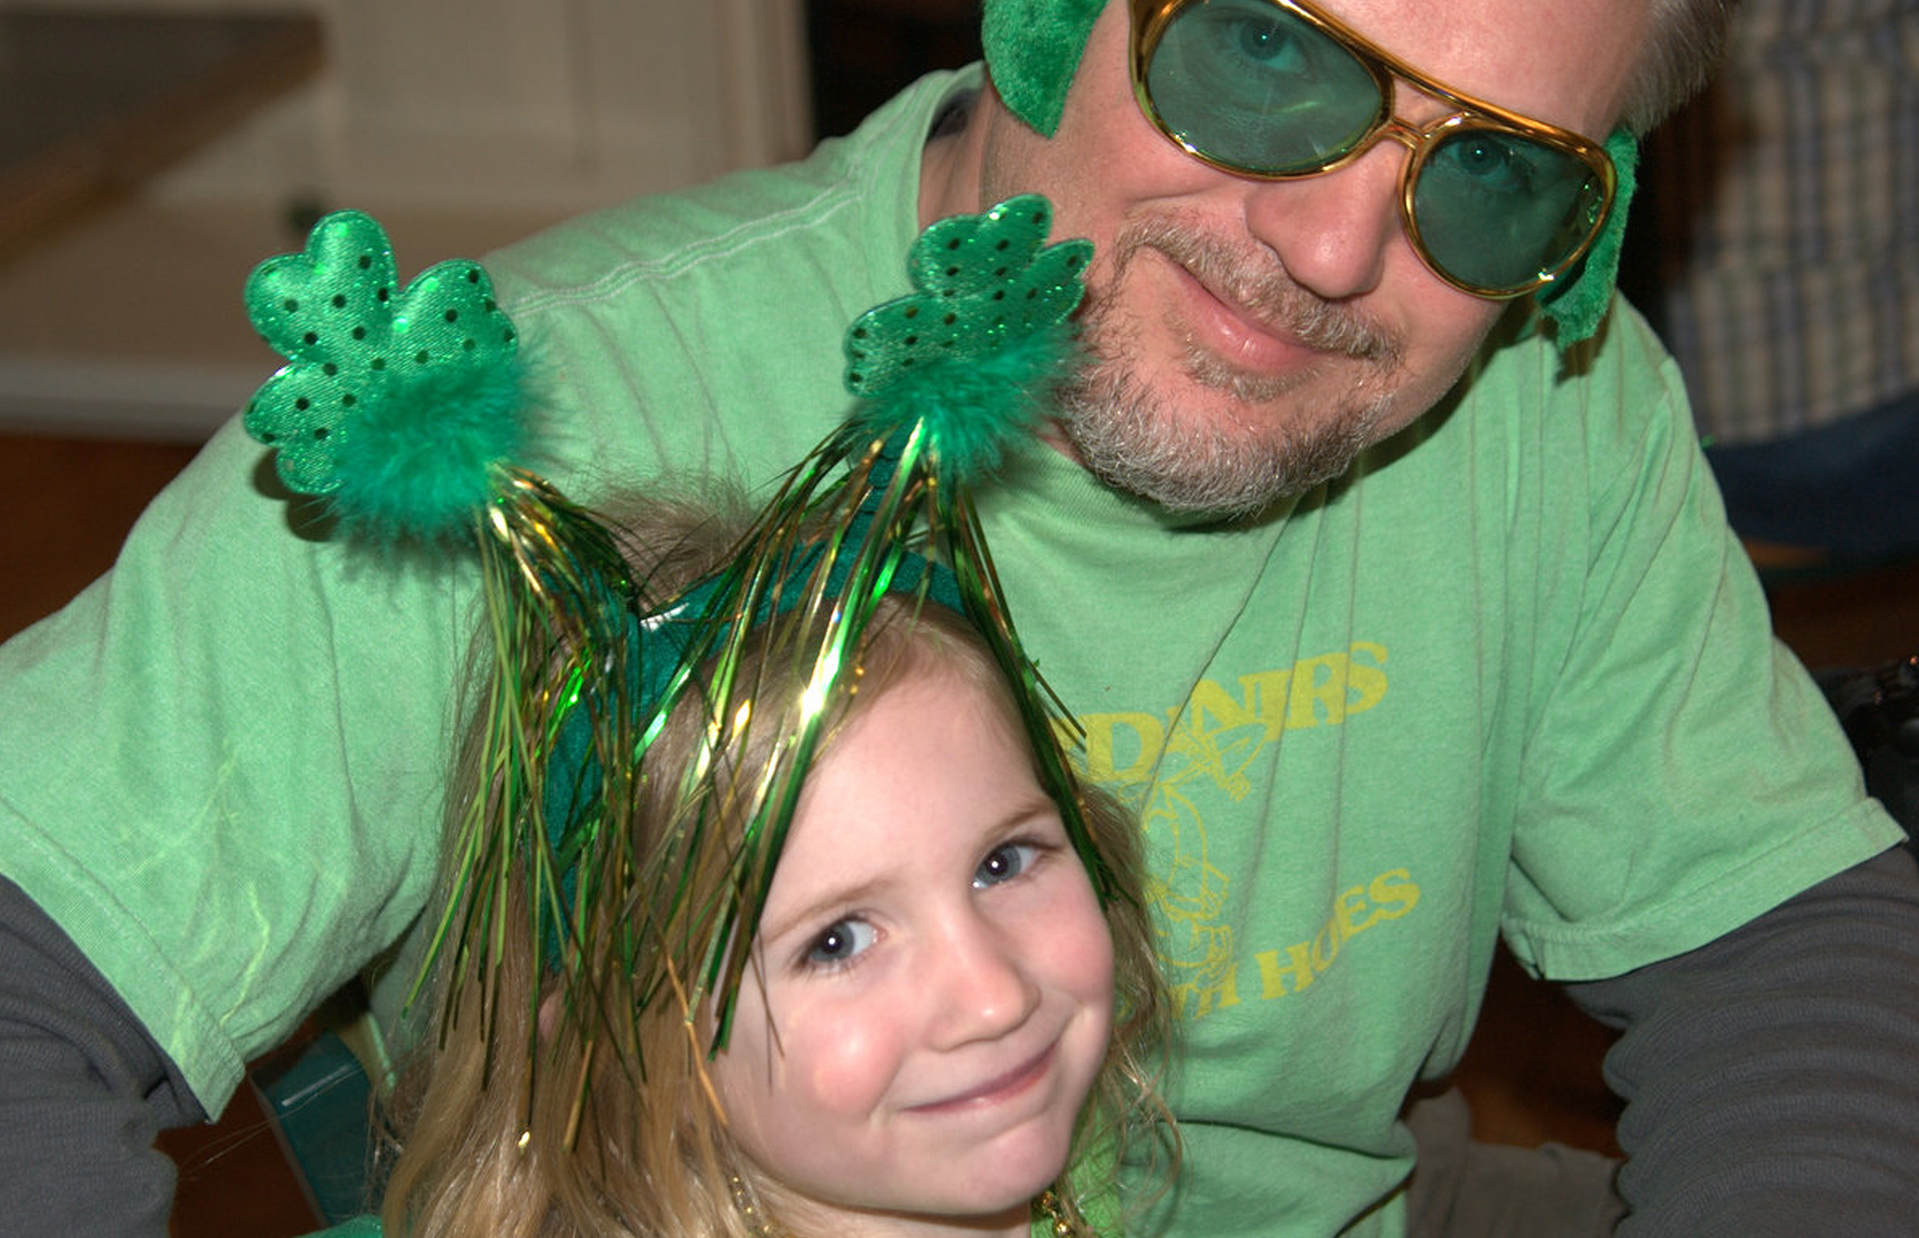 Father and daughter at Shenanigan's on St. Patrick's Day